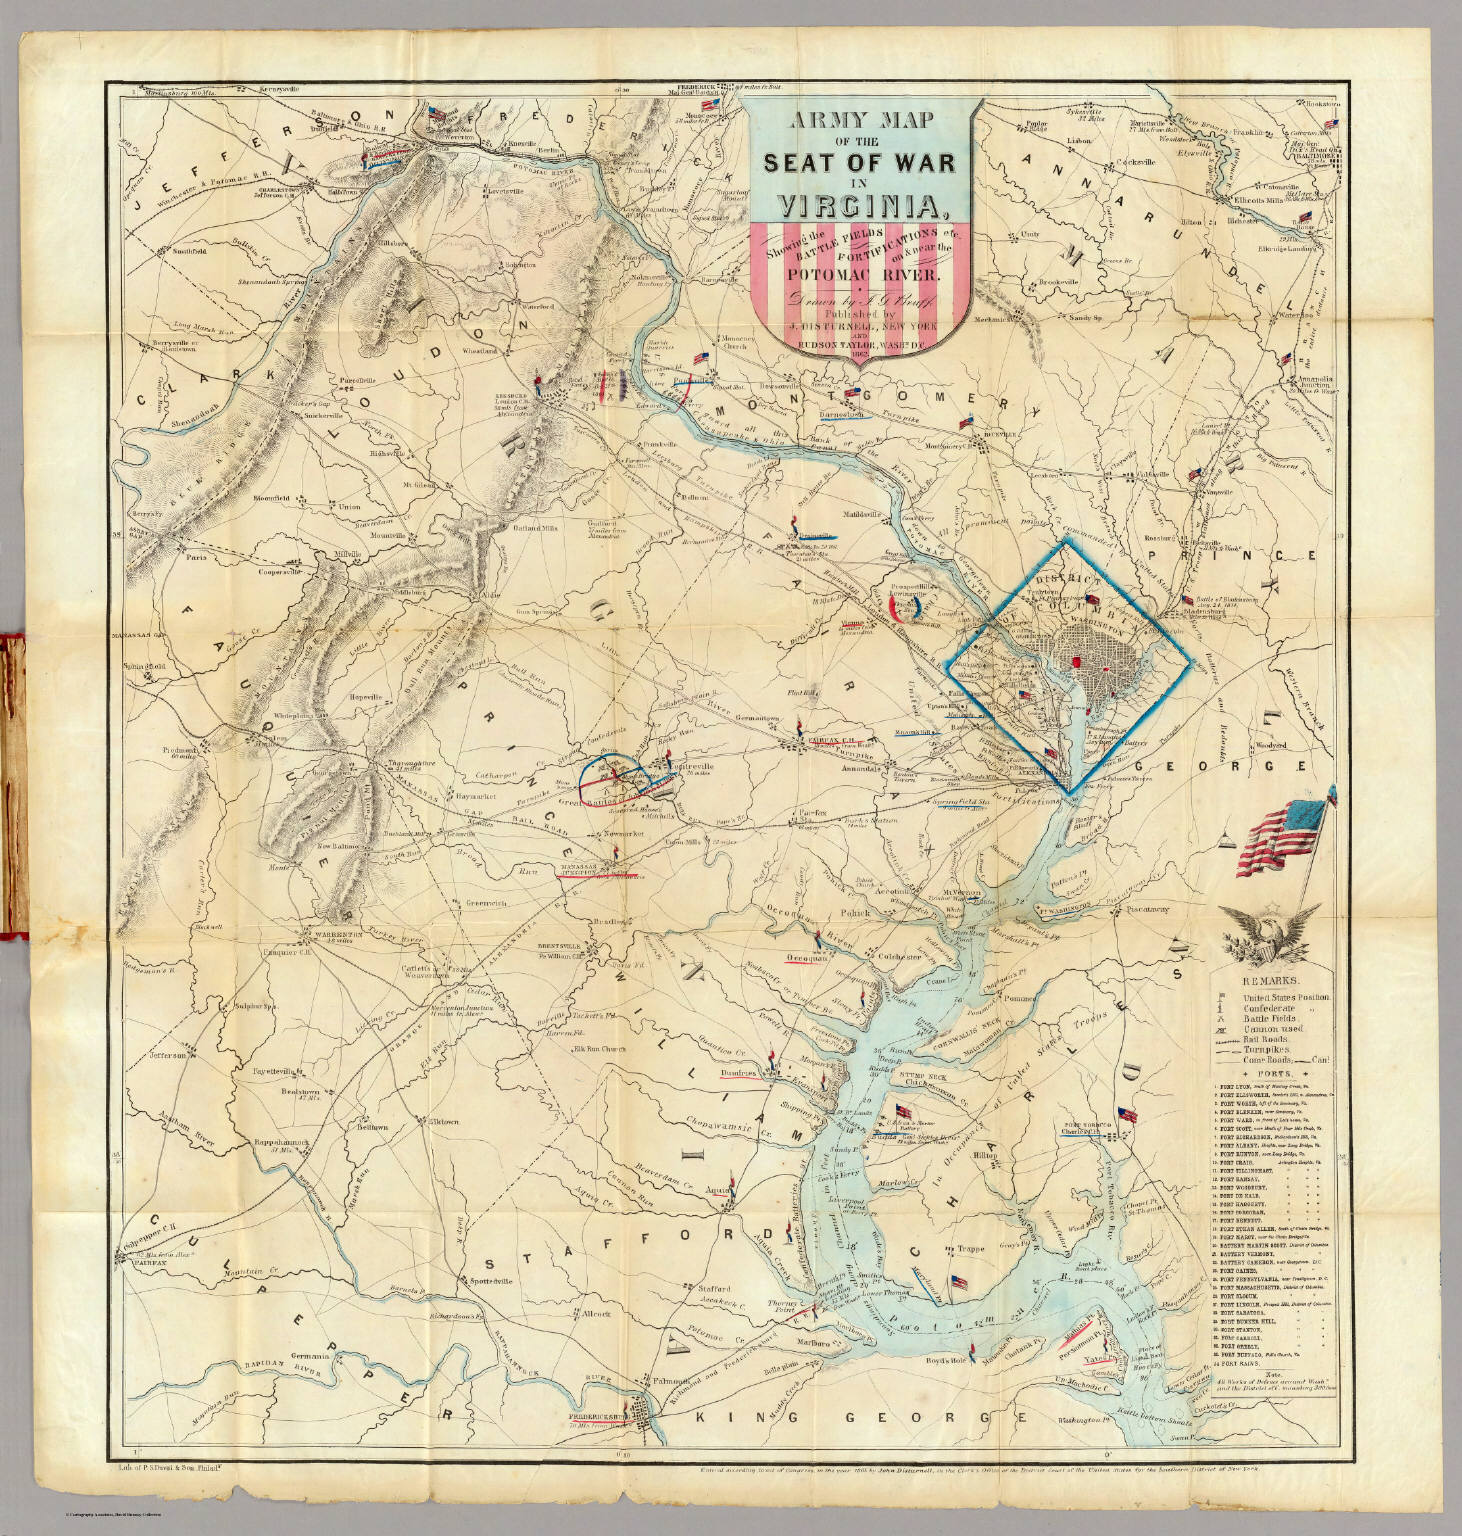 Army Map Of The Seat Of War In Virginia. - David Rumsey Historical Civil War Map Virginia on